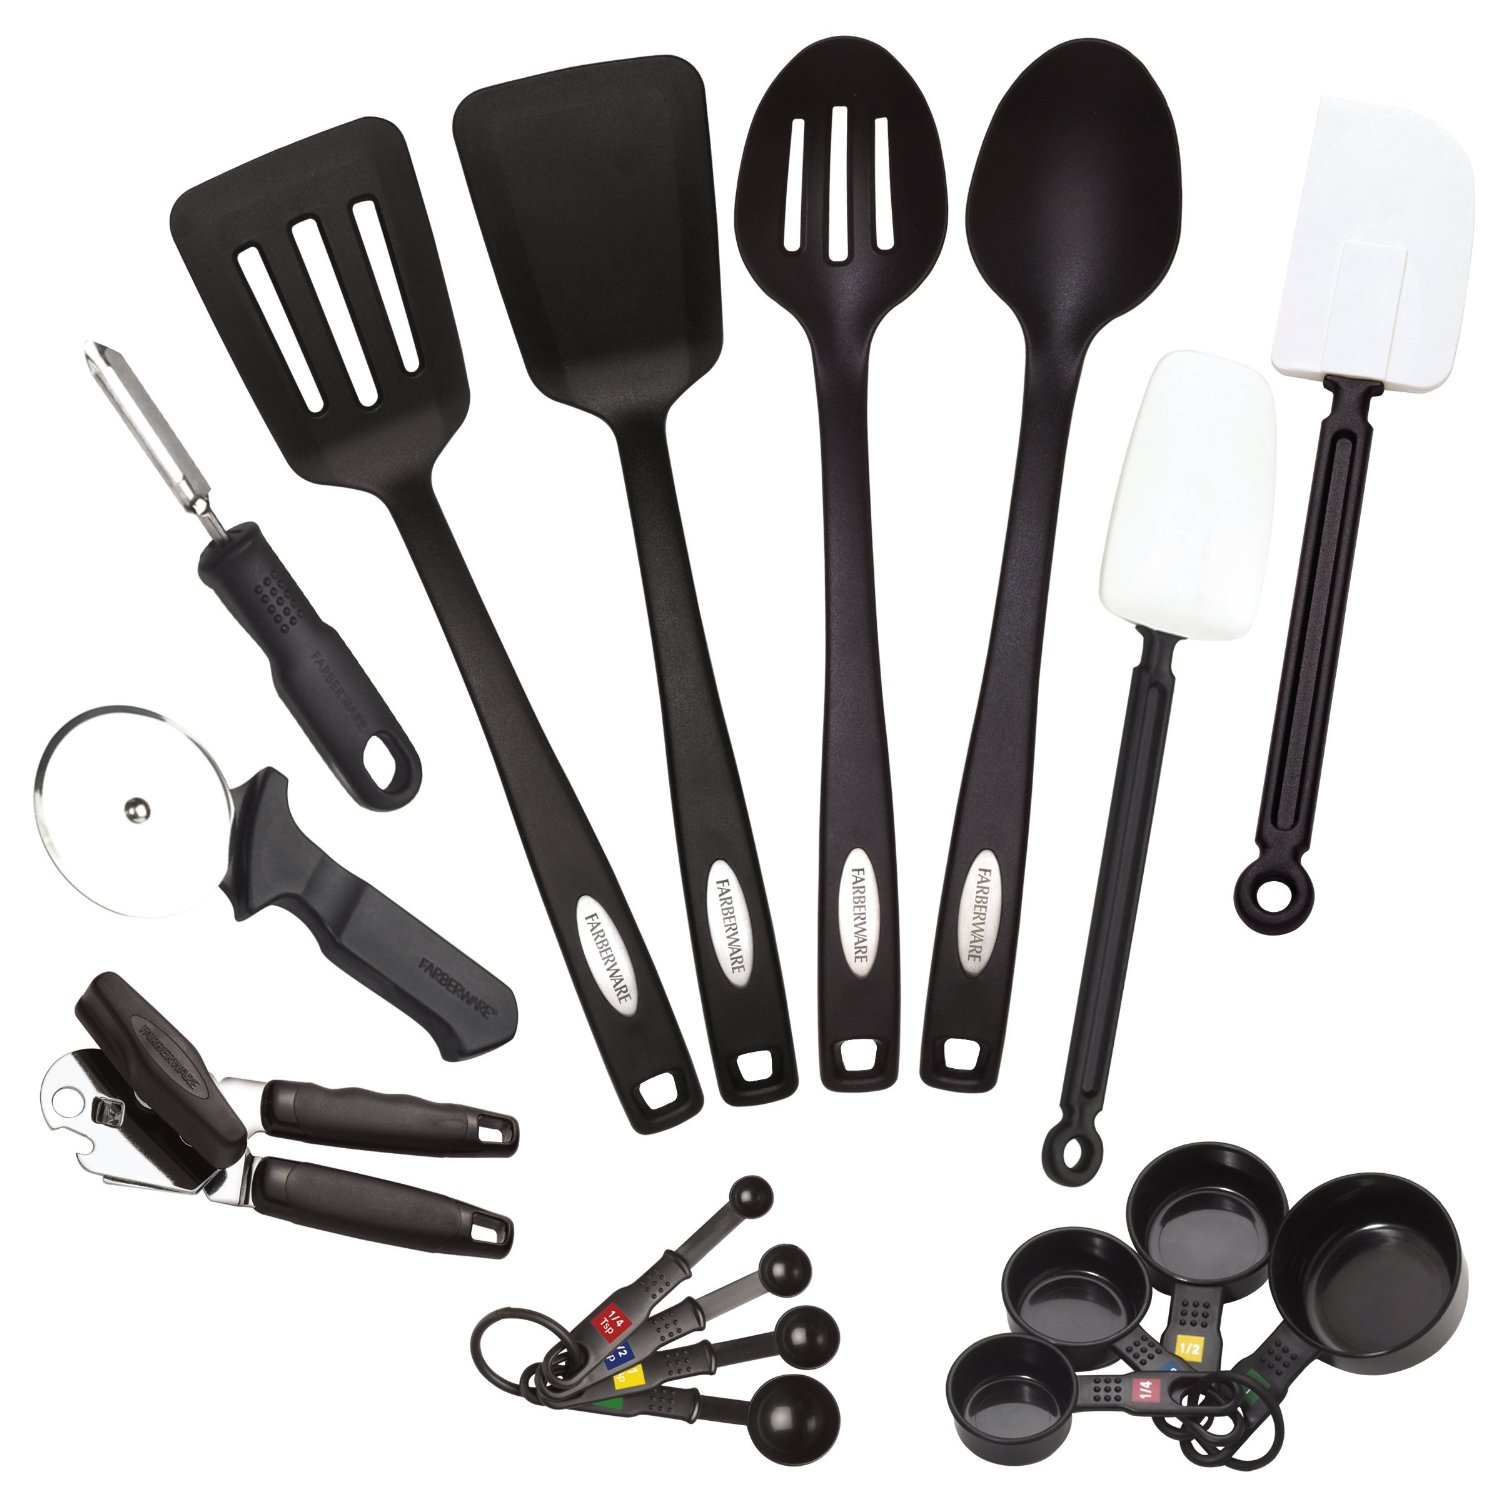 Top 10 Best Home Utensil Set Review In 2020 Top 10 Review Of